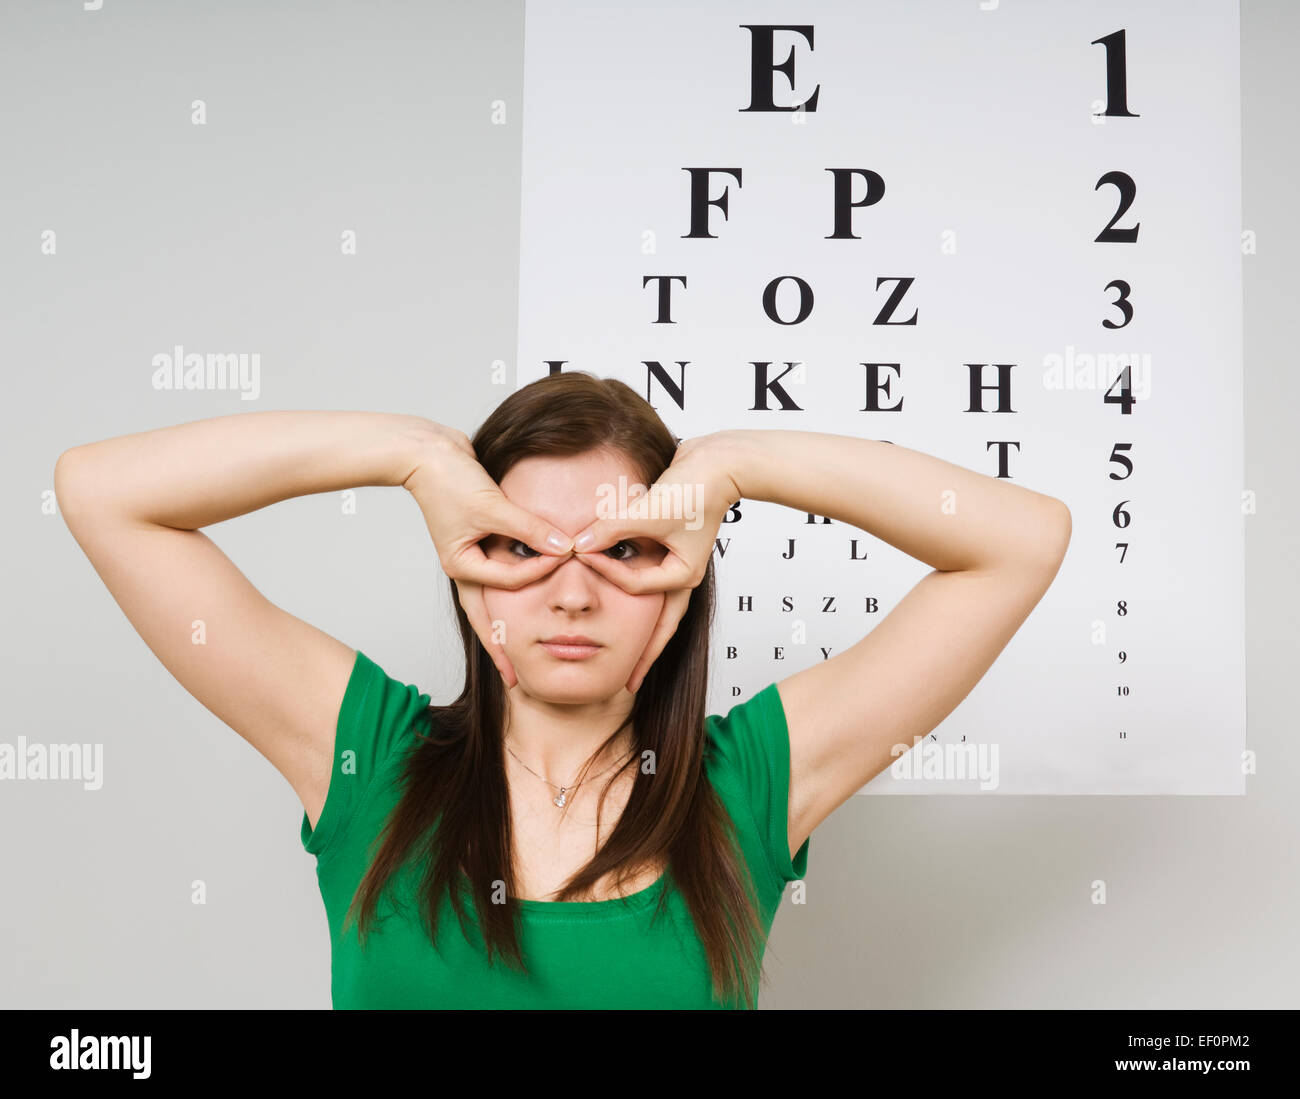 Woman standing in front of eye chart - Stock Image